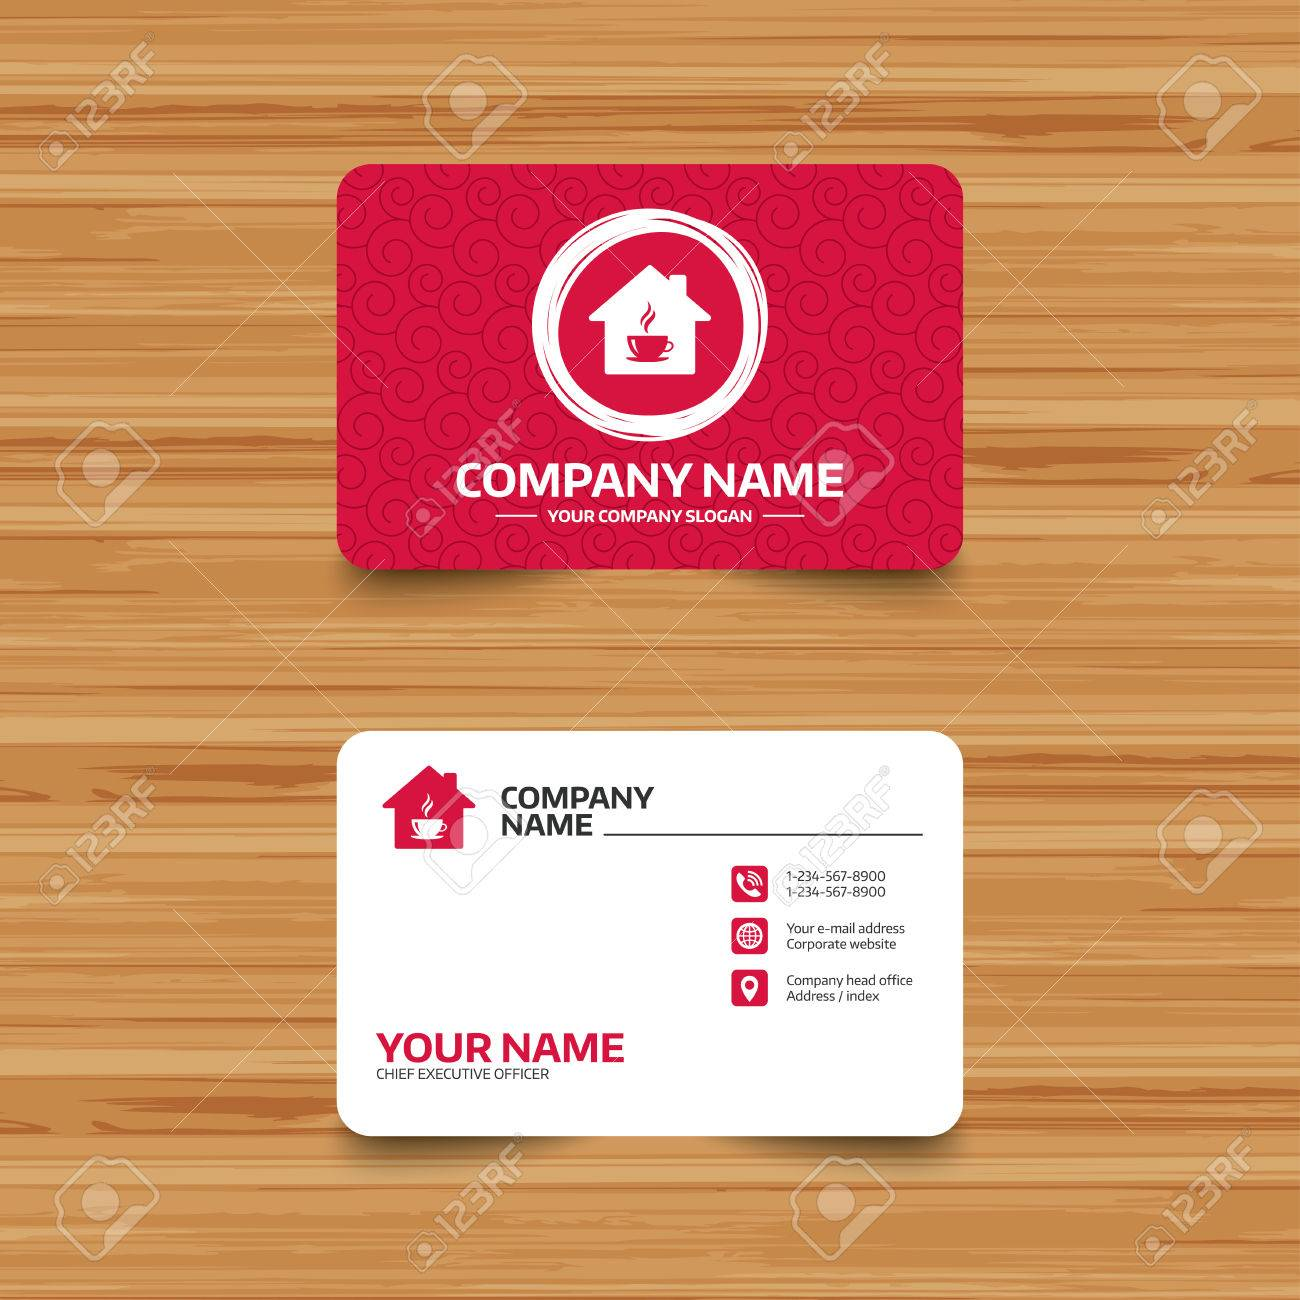 Business card template with texture coffee shop icon hot coffee business card template with texture coffee shop icon hot coffee cup sign hot colourmoves